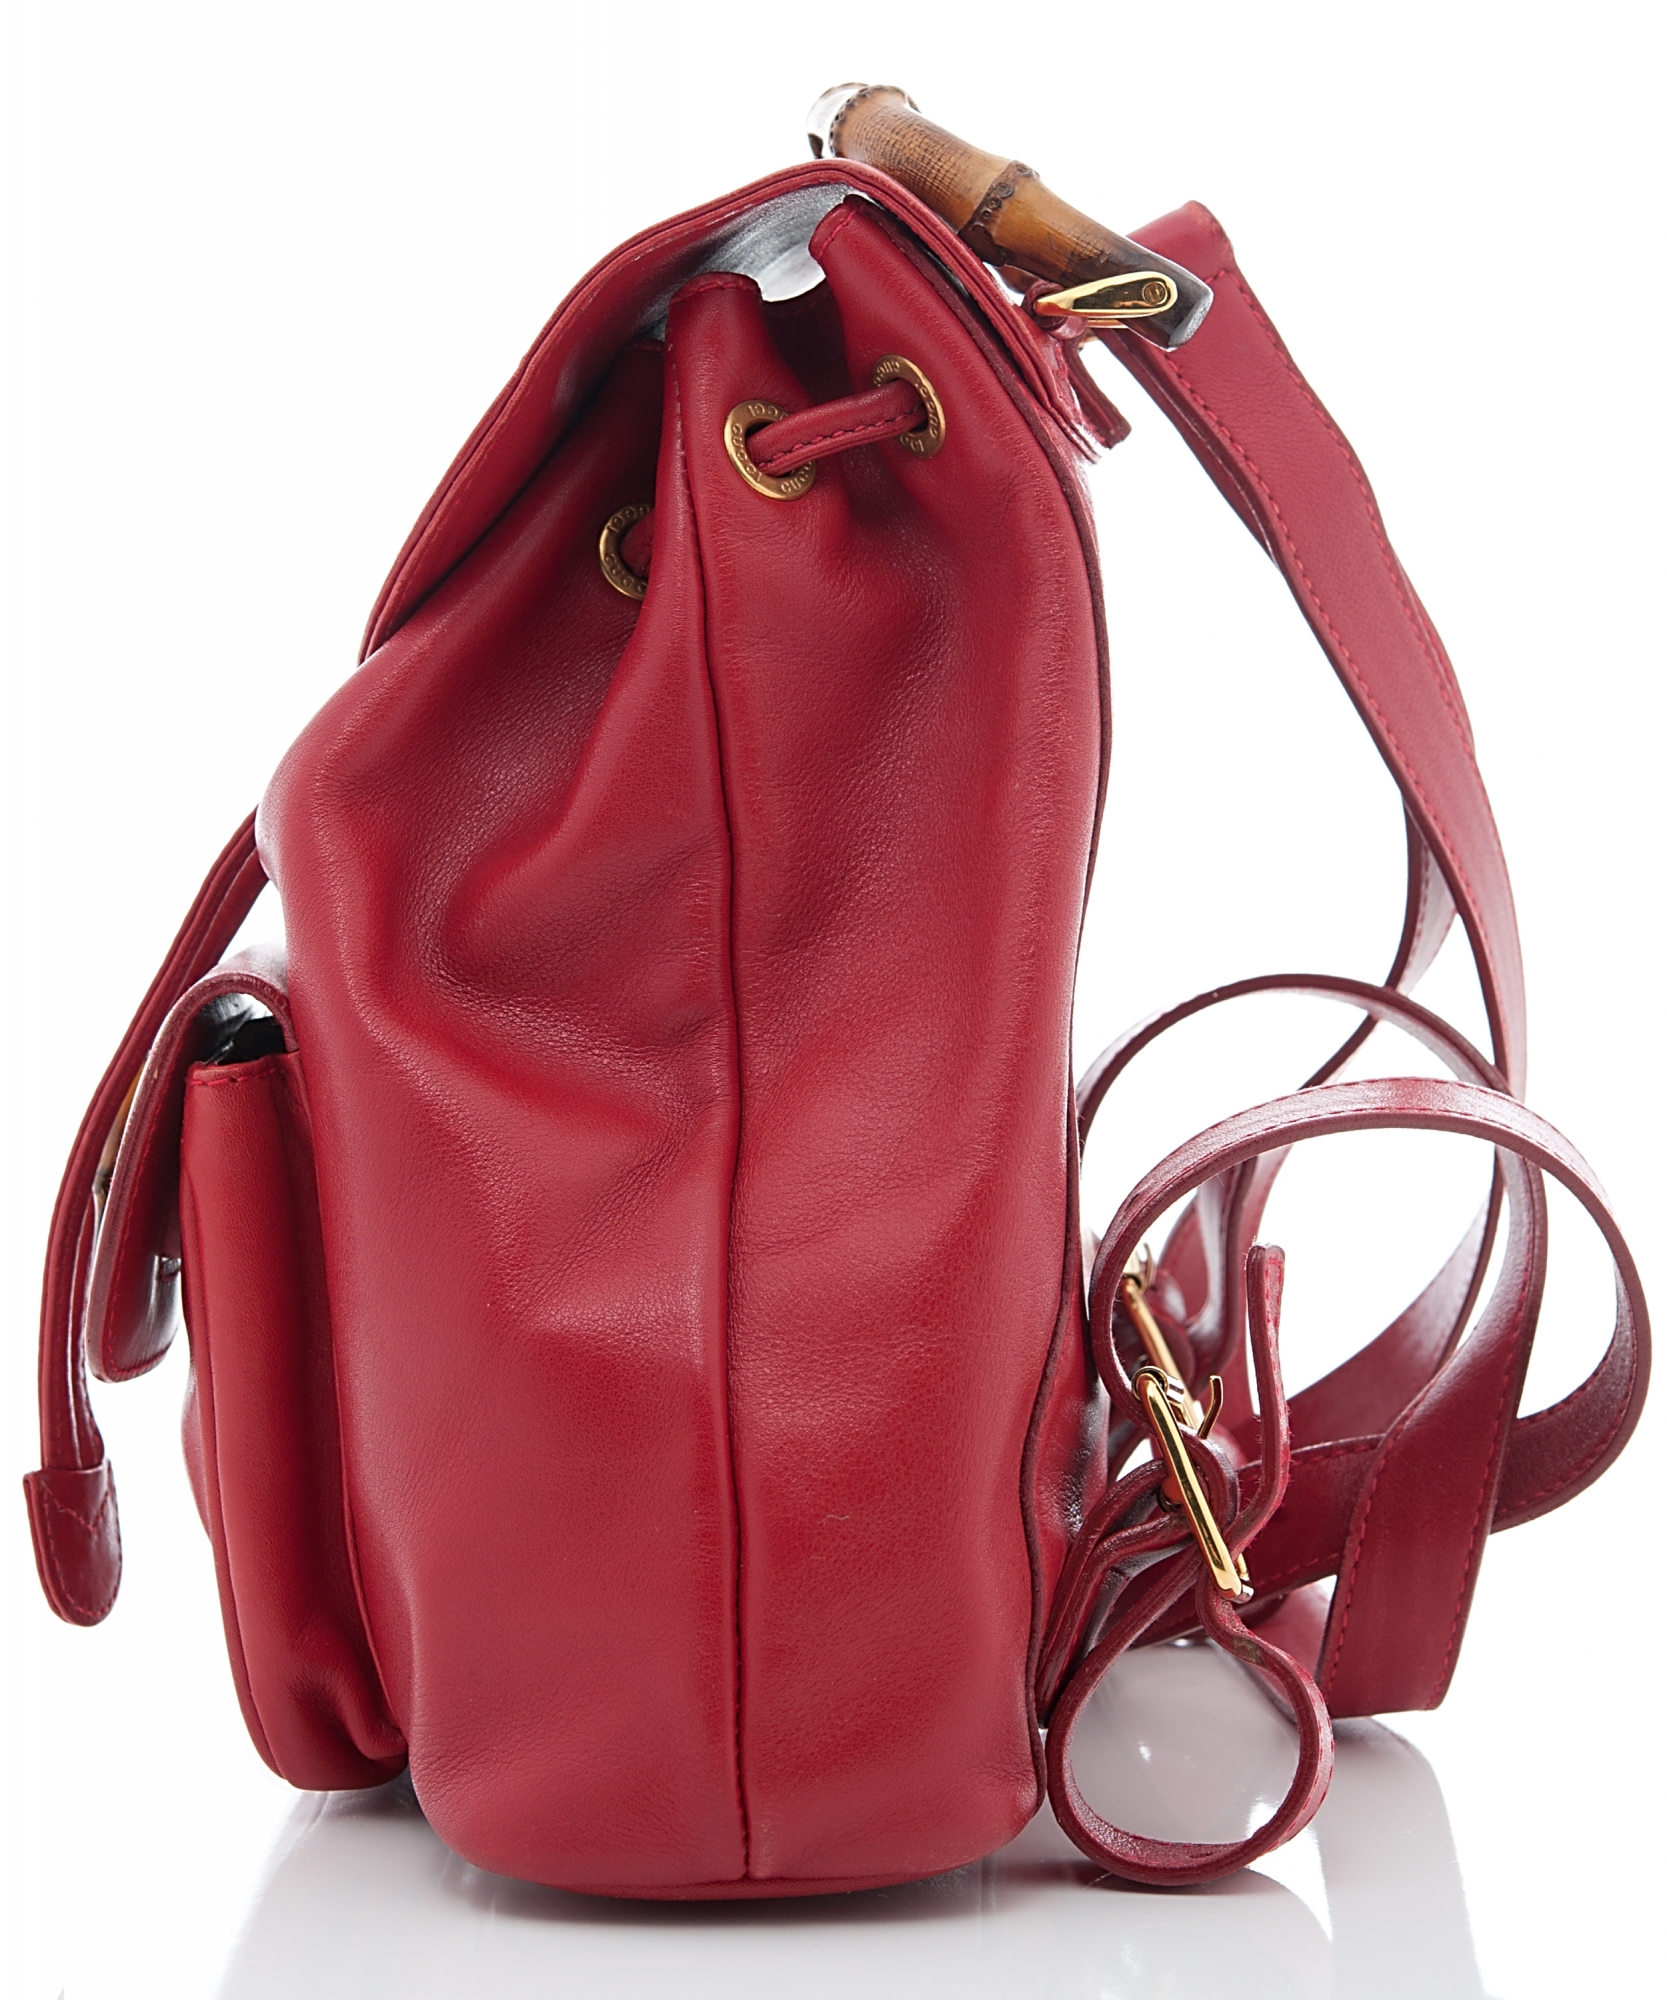 Gucci Red Leather Drawstring Bamboo Handle Backpack La